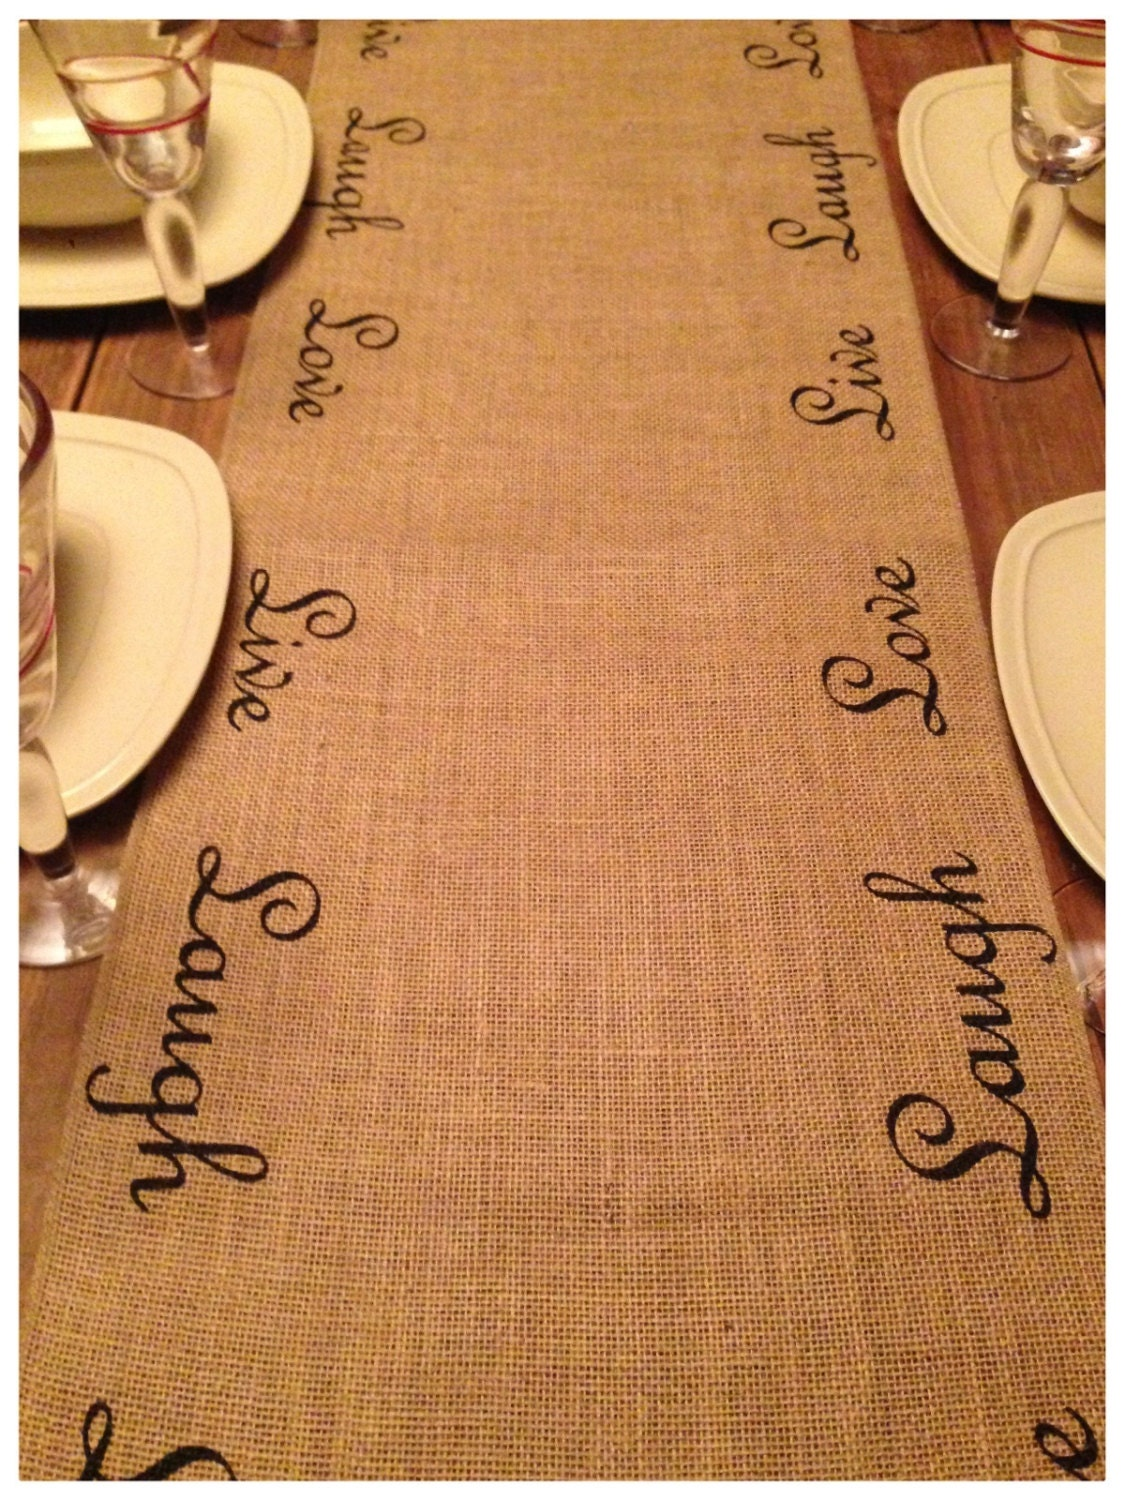 Burlap Table Runner 16 Or 18 Wide Live Laugh Love On Both Edges Of